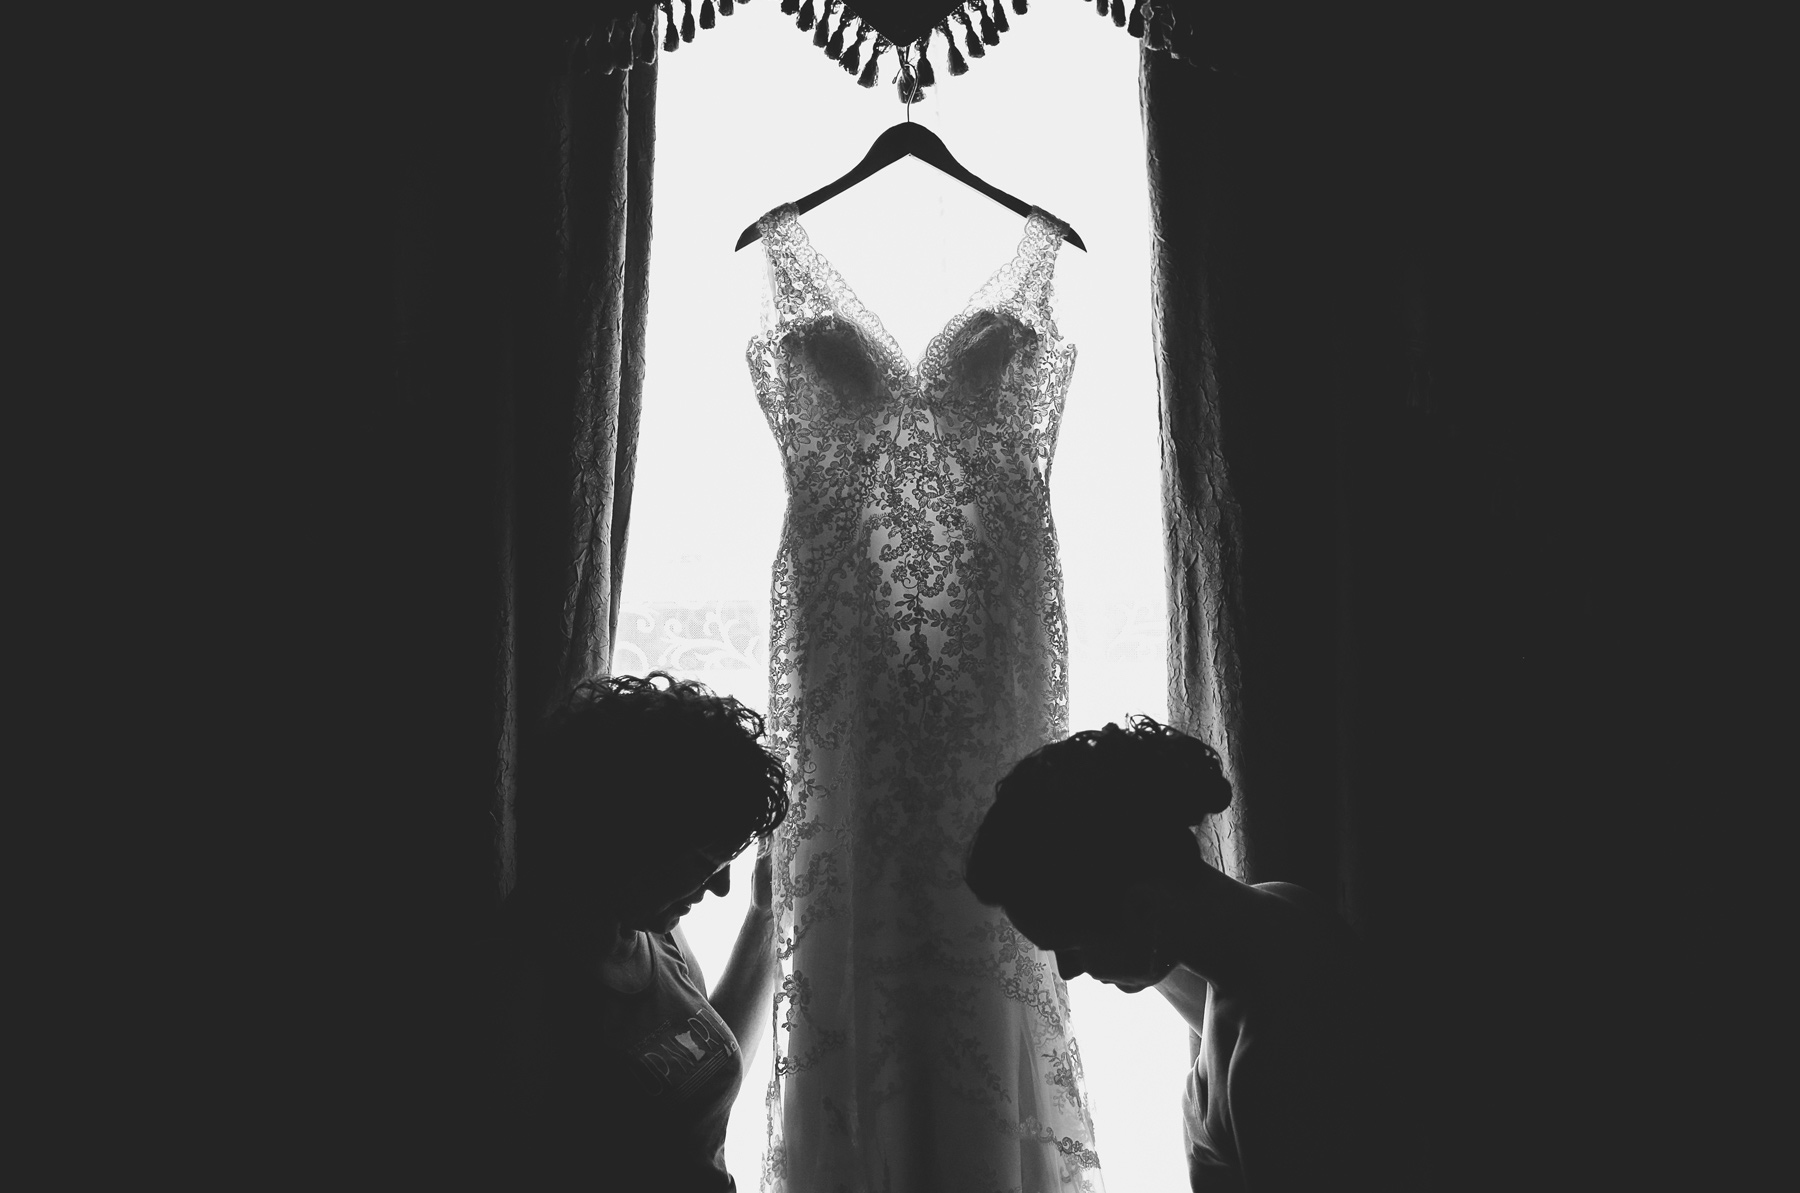 01-Minneapolis-Minnesota-Wedding-Photographer-by-Andrew-Vick-Photography-Summer-Renaissance-Depot-Getting-Ready-Bride-Mother-Parents-Dress-Black-and-White-Ashley-and-Eric.jpg